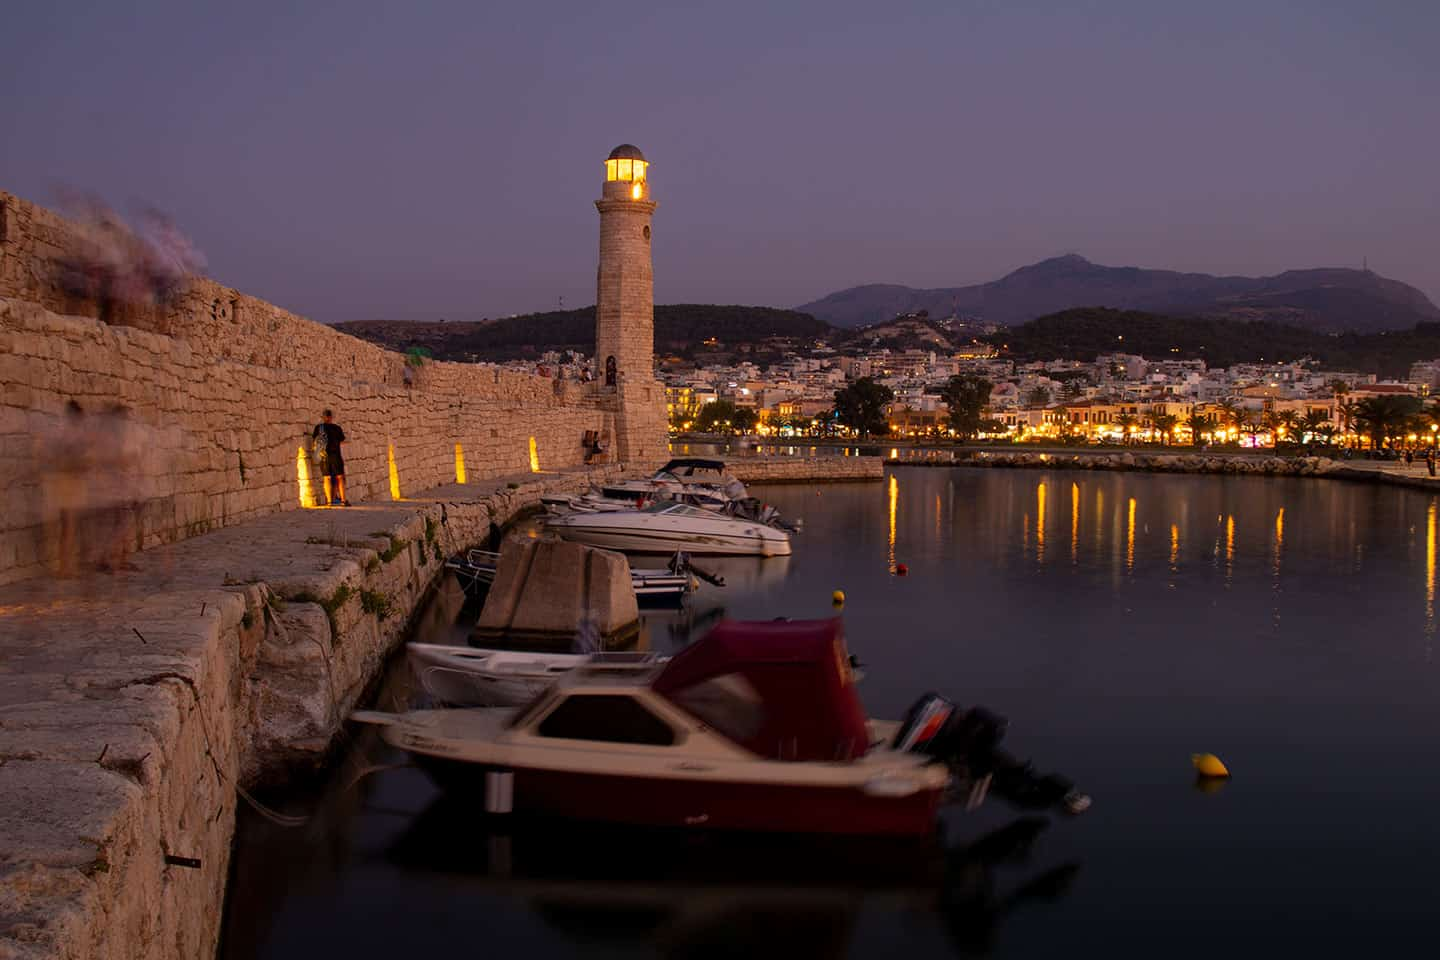 Image of the lighthouse and city of Rethymno, Crete, Greece